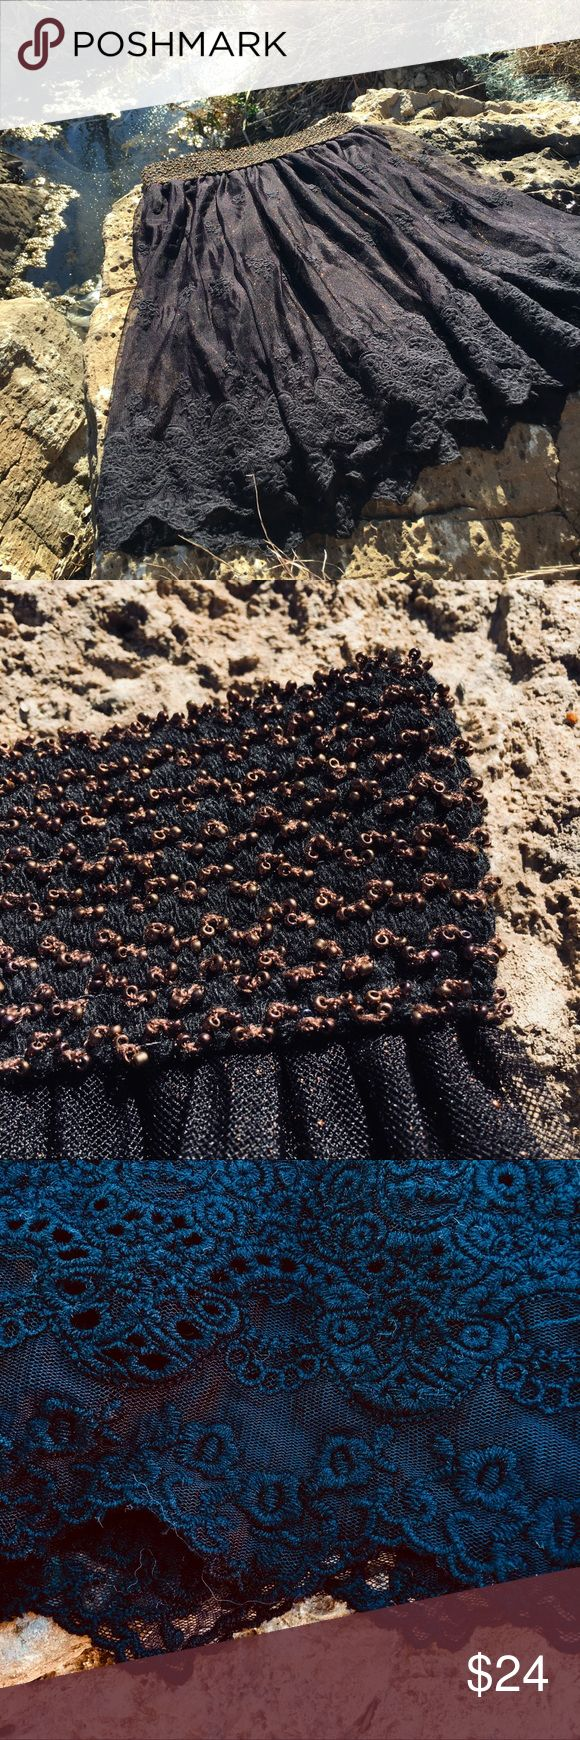 """Miss Me Black and Copper skirt! Prettier than the pictures! This black lace overlay skirt has a shimmer copper underskirt and copper elastic waistband that make this a really pretty piece! The waist is comfortably 24"""" - 27"""". The length from the waist to the hem is 21"""".  Price is firm. Miss Me Skirts Mini"""